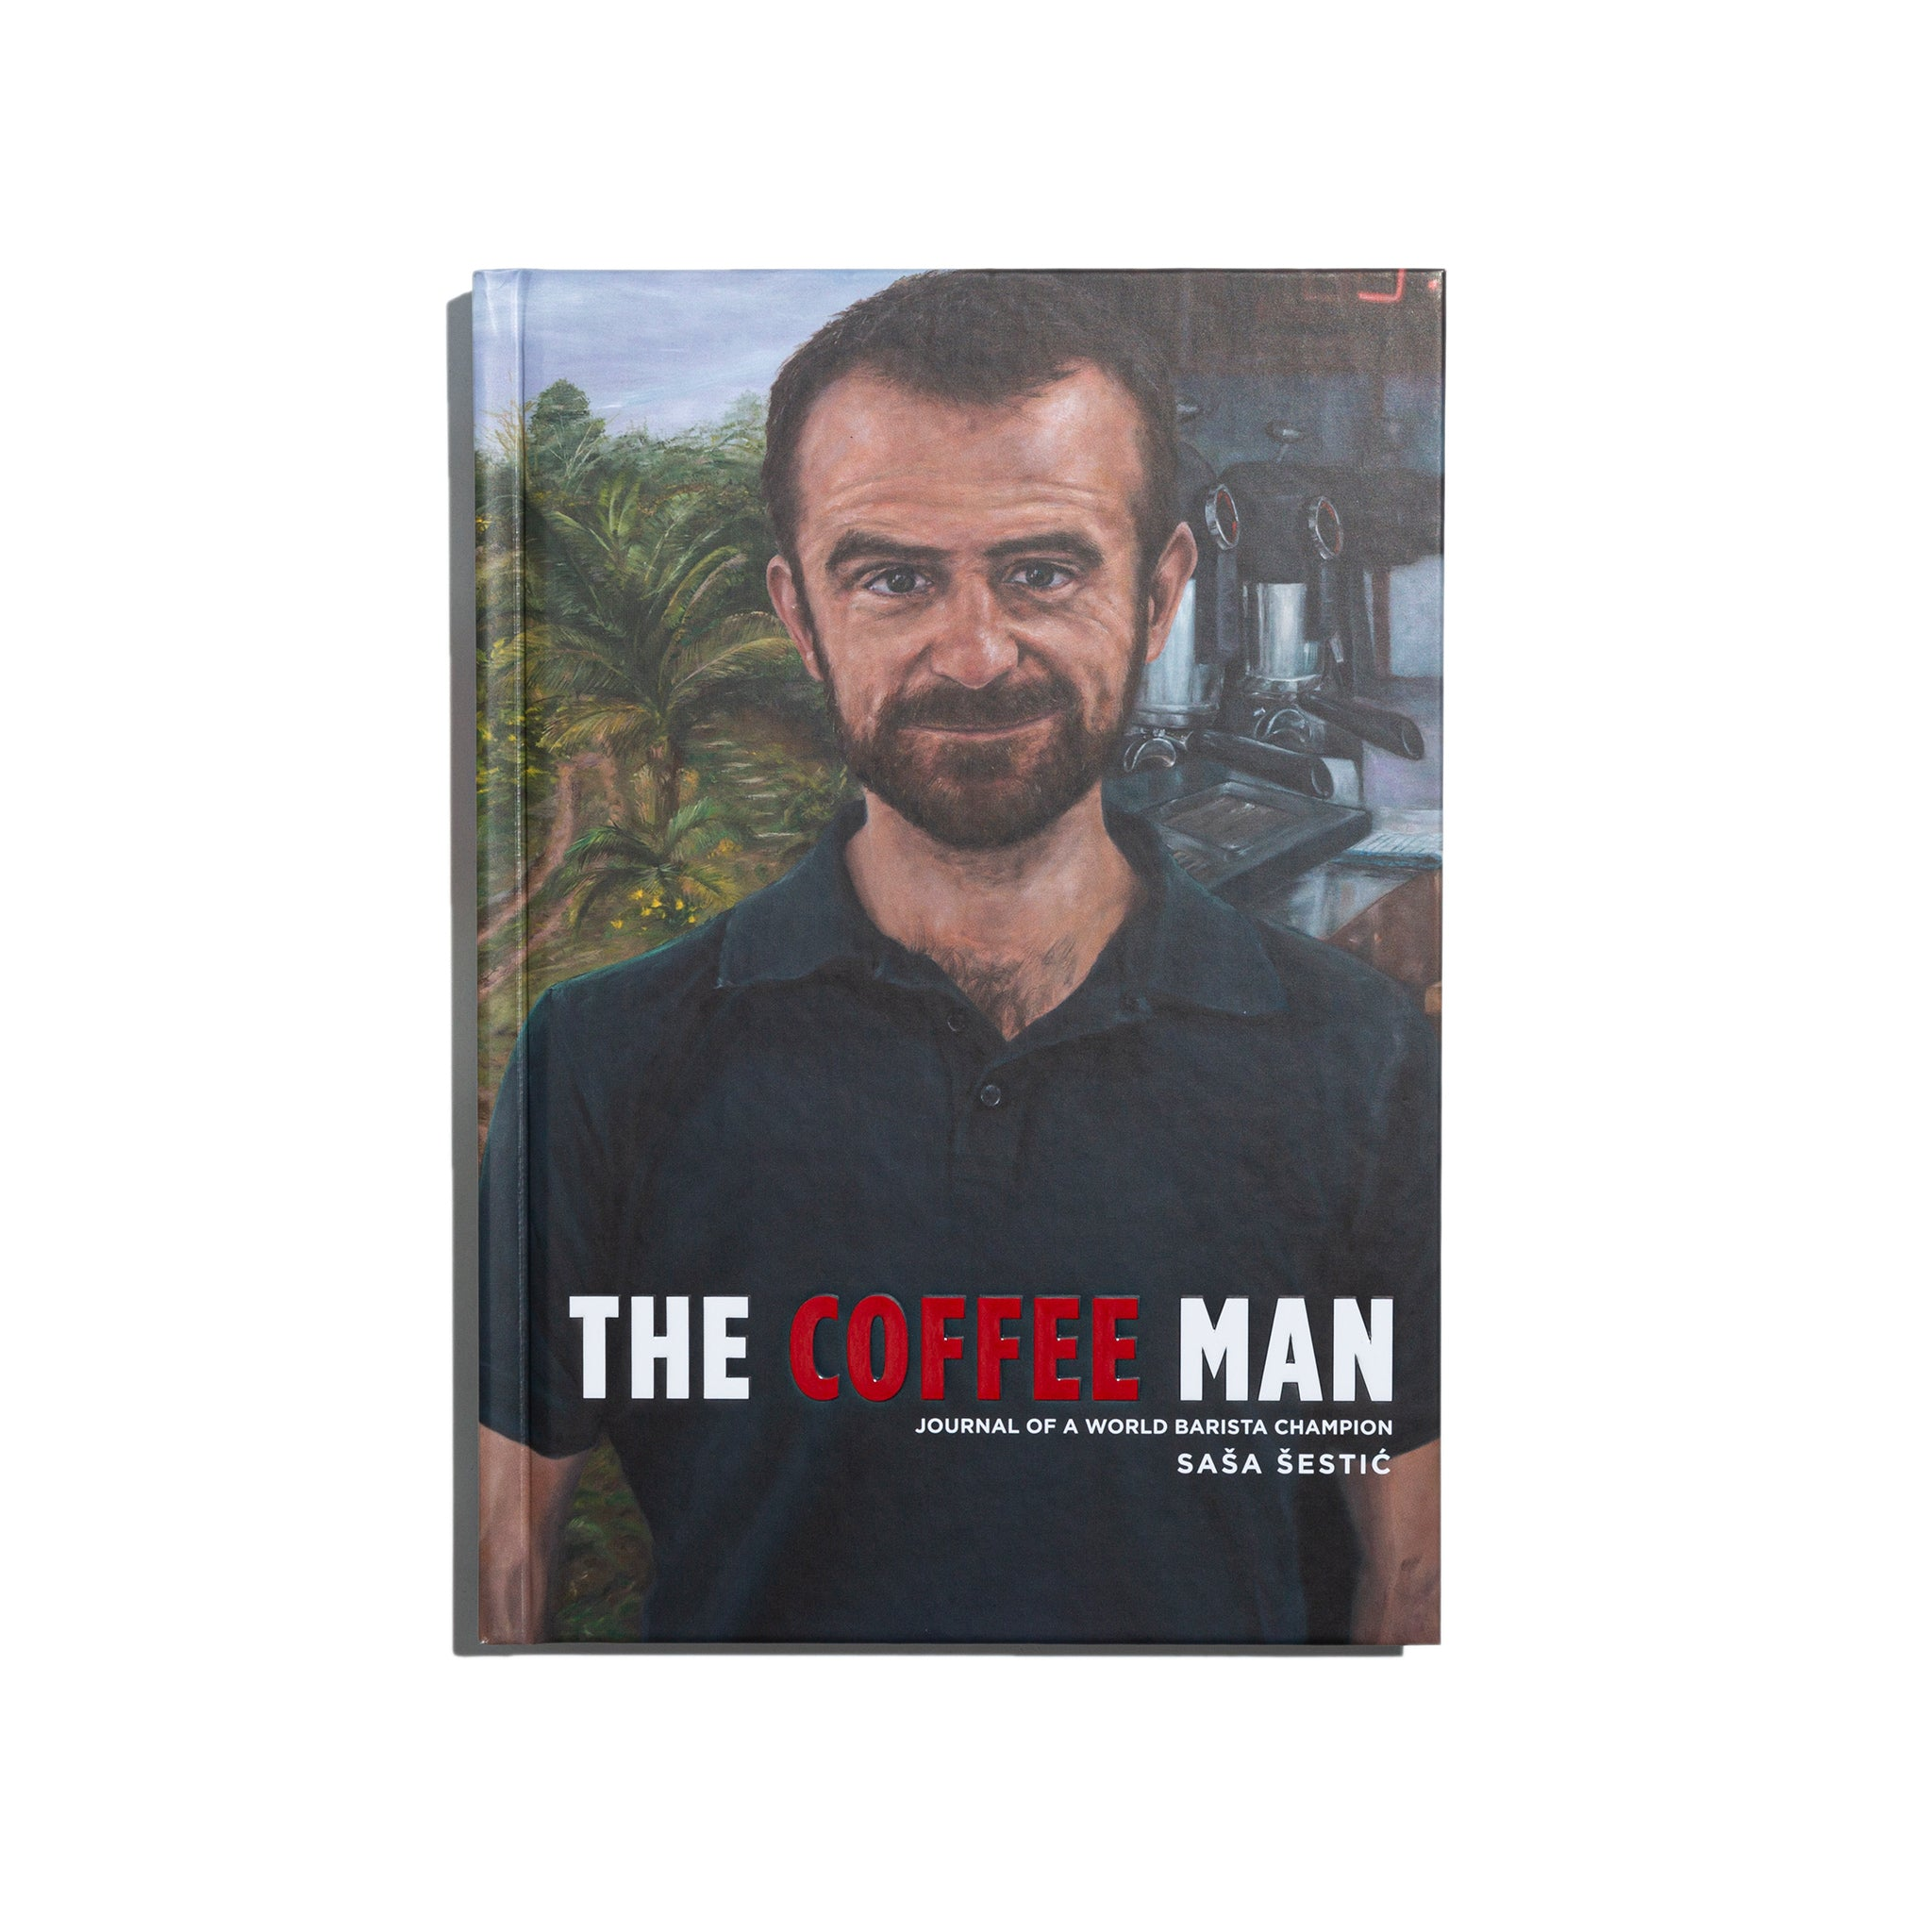 The Coffee Man: Journal of a Word Barista Champion - Sasa Sestic